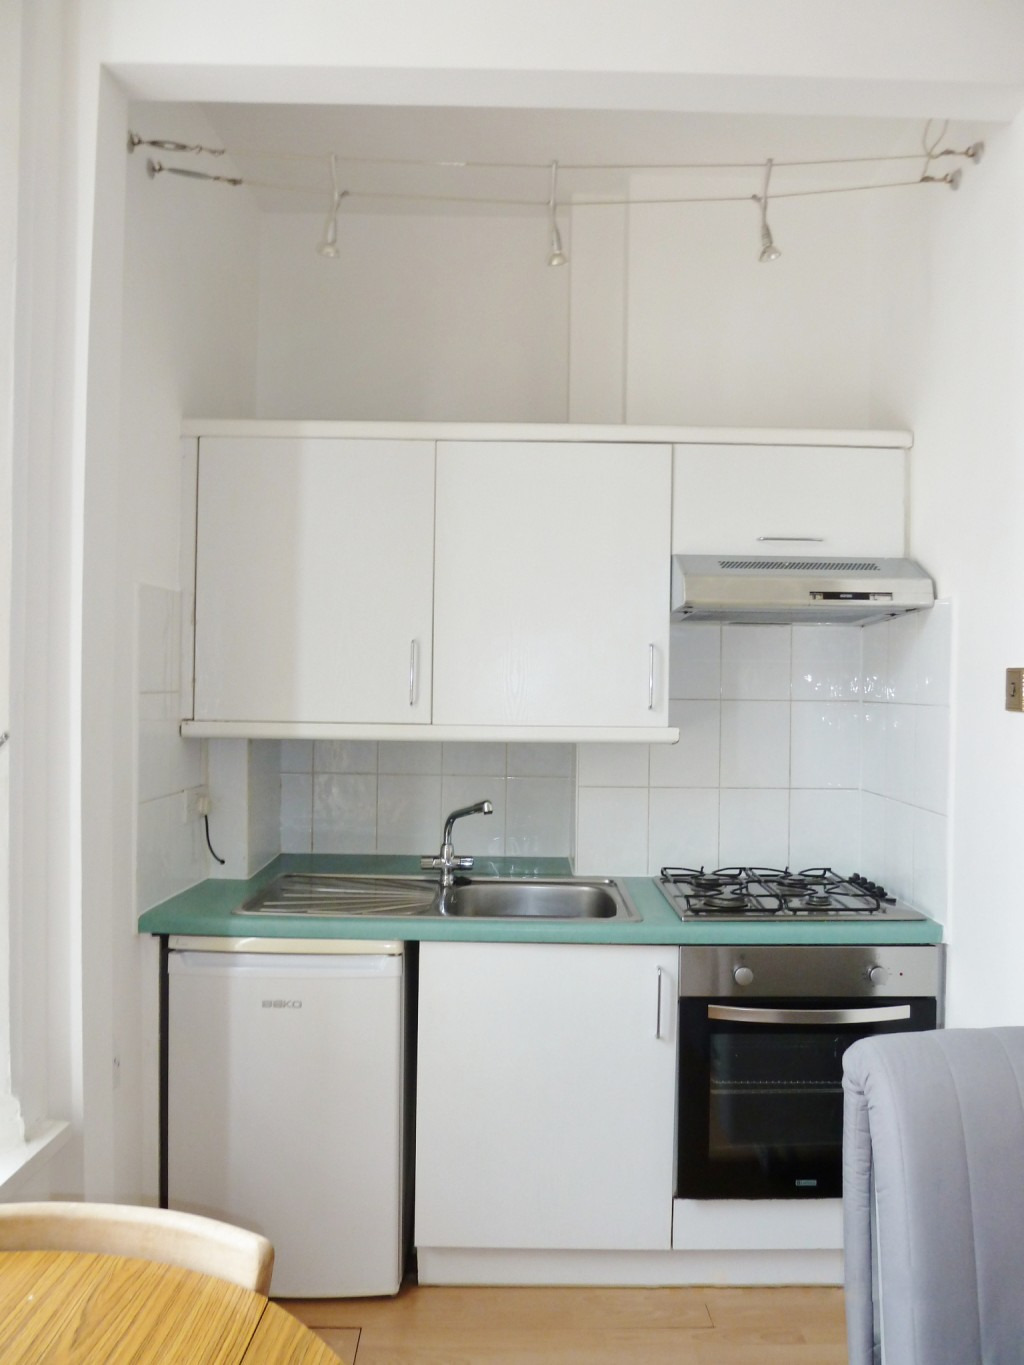 1 bedroom studio flat/apartment To Let in Brent - Fully fitted kitchen